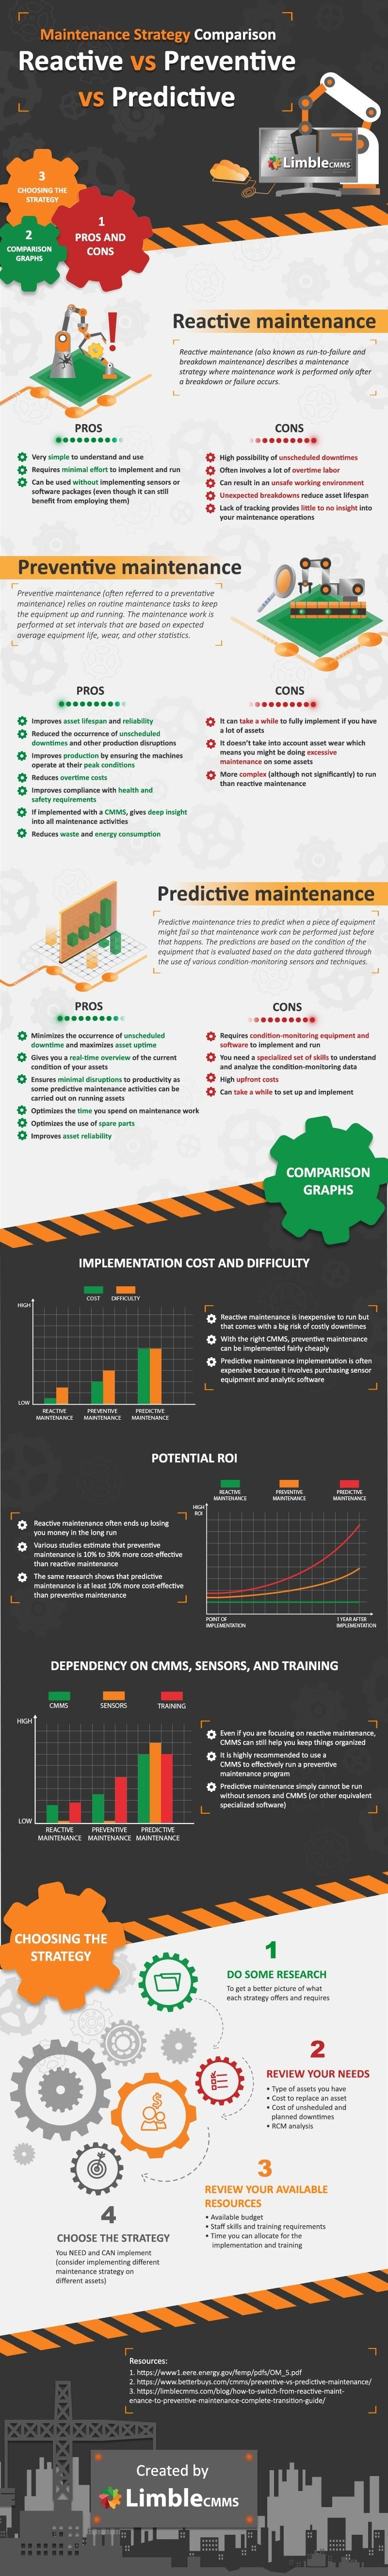 3 Maintenance Strategy Types Reactive versus Predictive versus Predictive #infographic